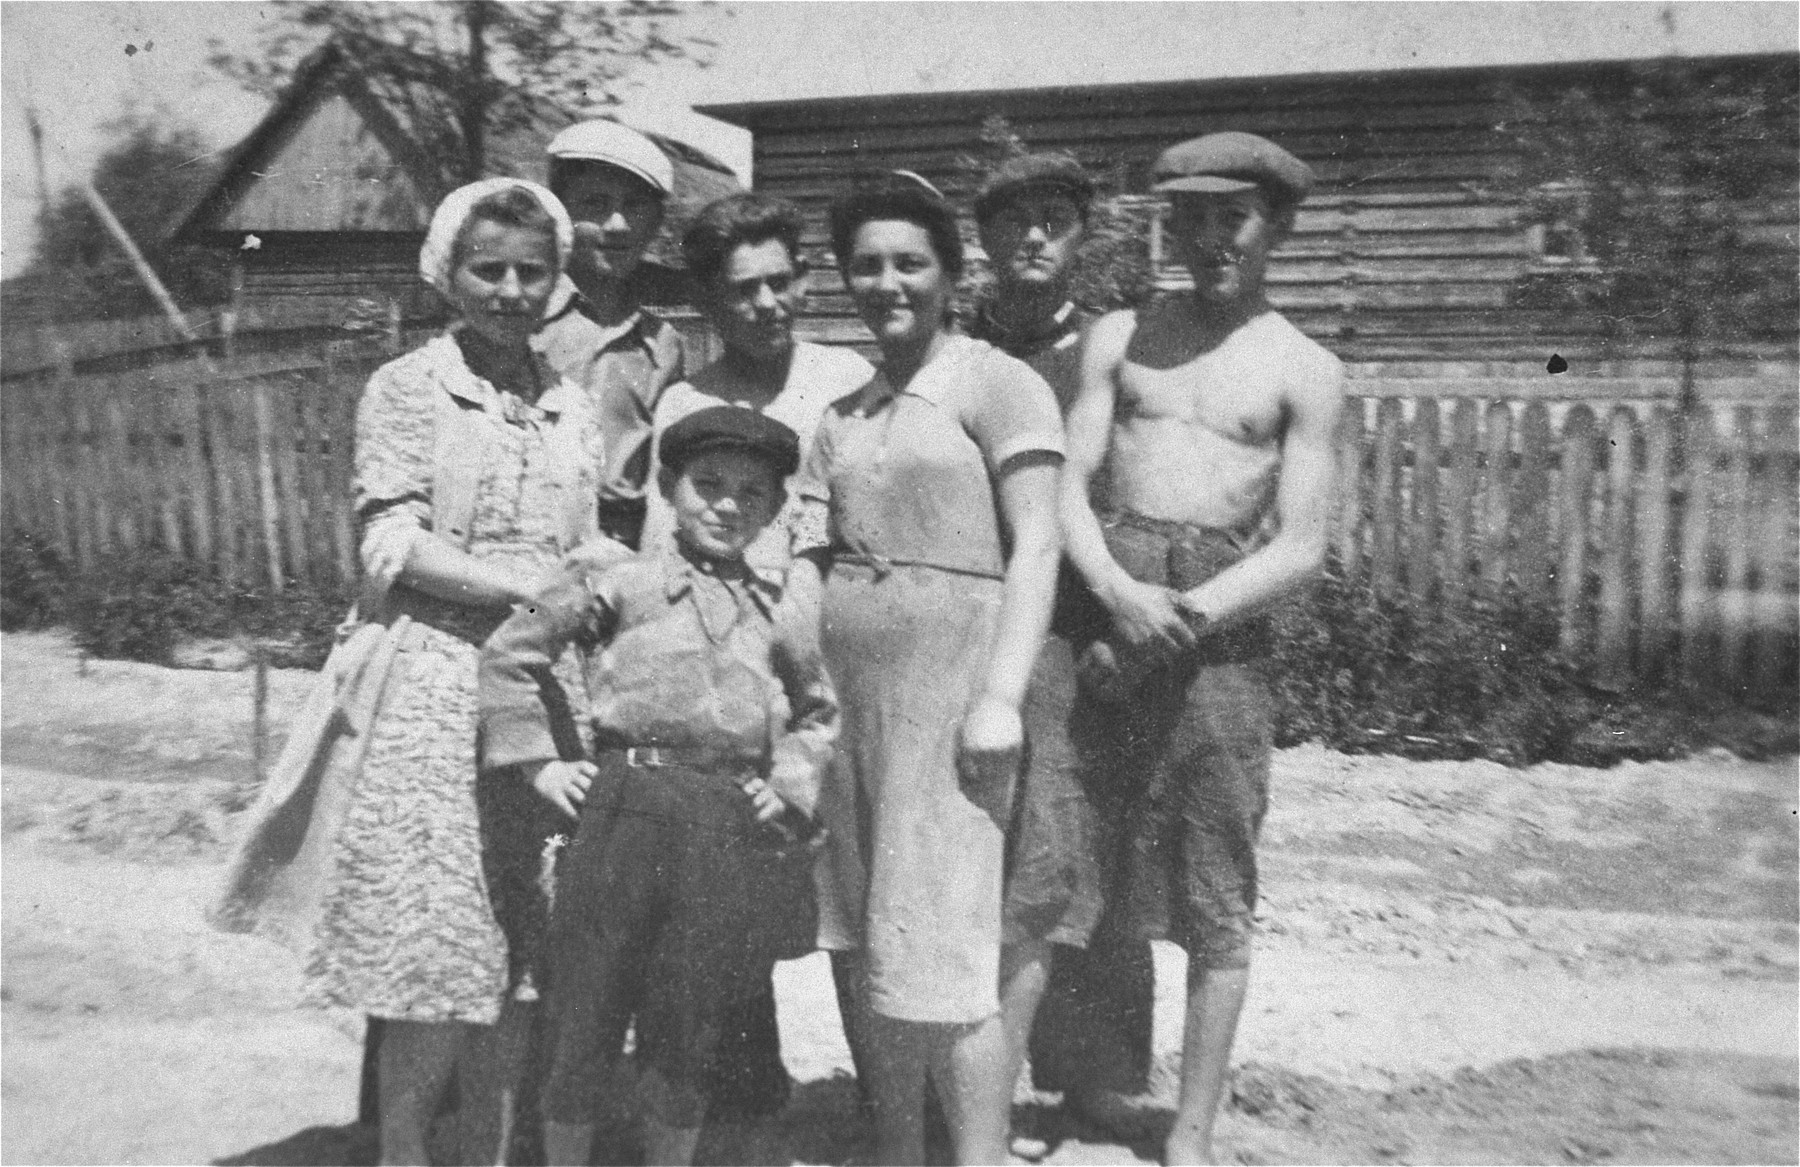 Group portrait of Jewish youth in the Kolbuszowa ghetto.    Among those pictured are Simcha Notowicz (back row, second from the left), Joel Graeber (standing behind the younger boy), Jankiel Plafkier (second from the right), and Srulek Biegeleisen (far right).